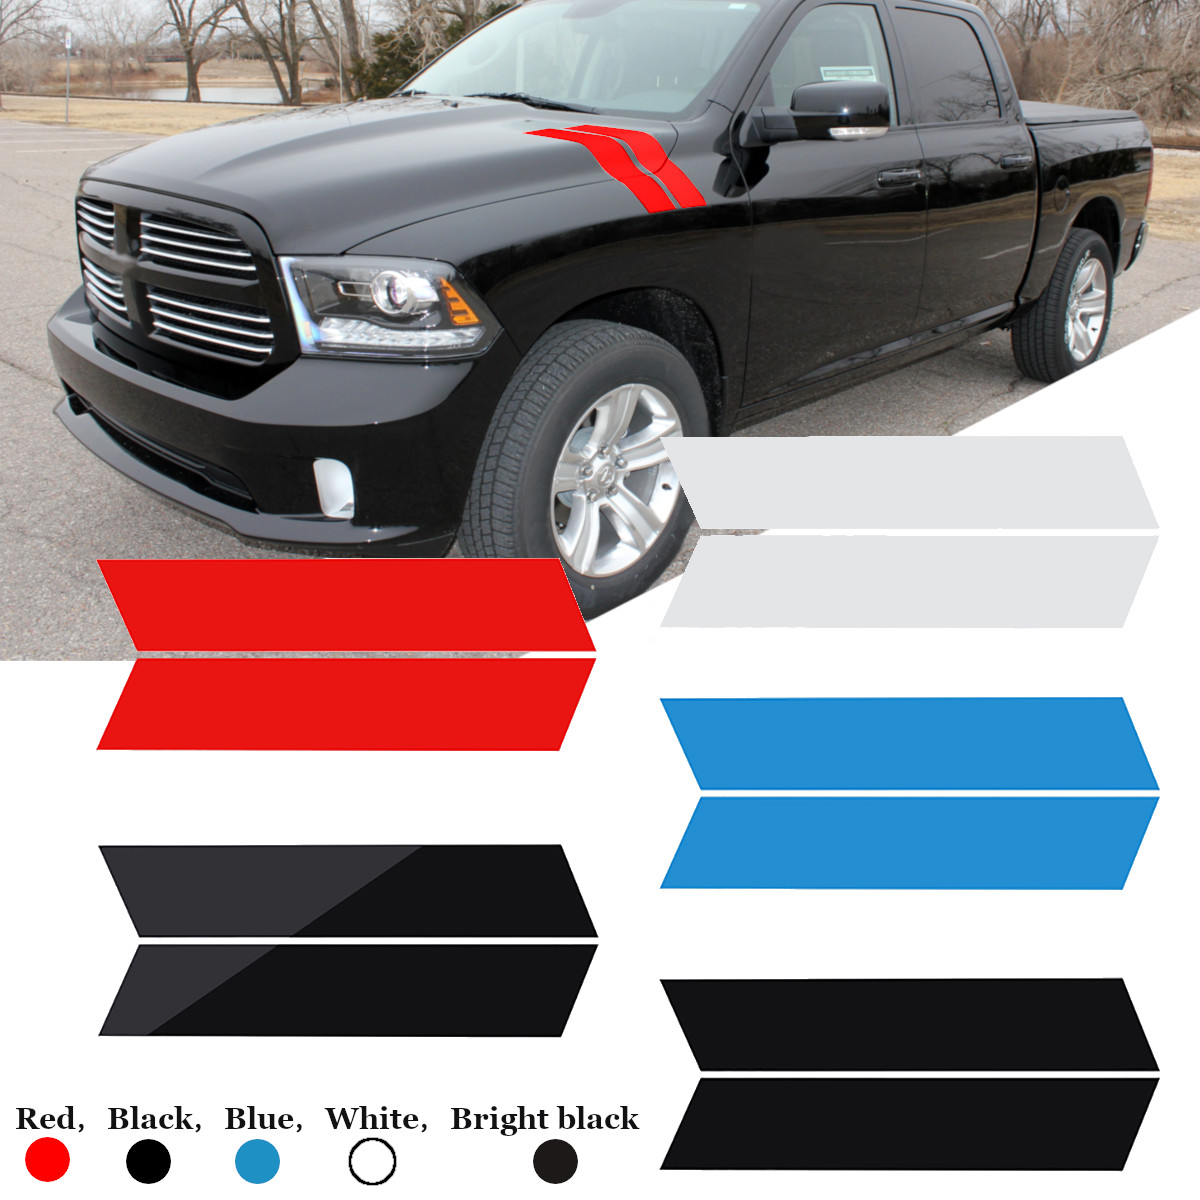 2Pcs Car Vinyl Stripes Truck Racing Stickers Graphic Decal Universal for Dodge Ram